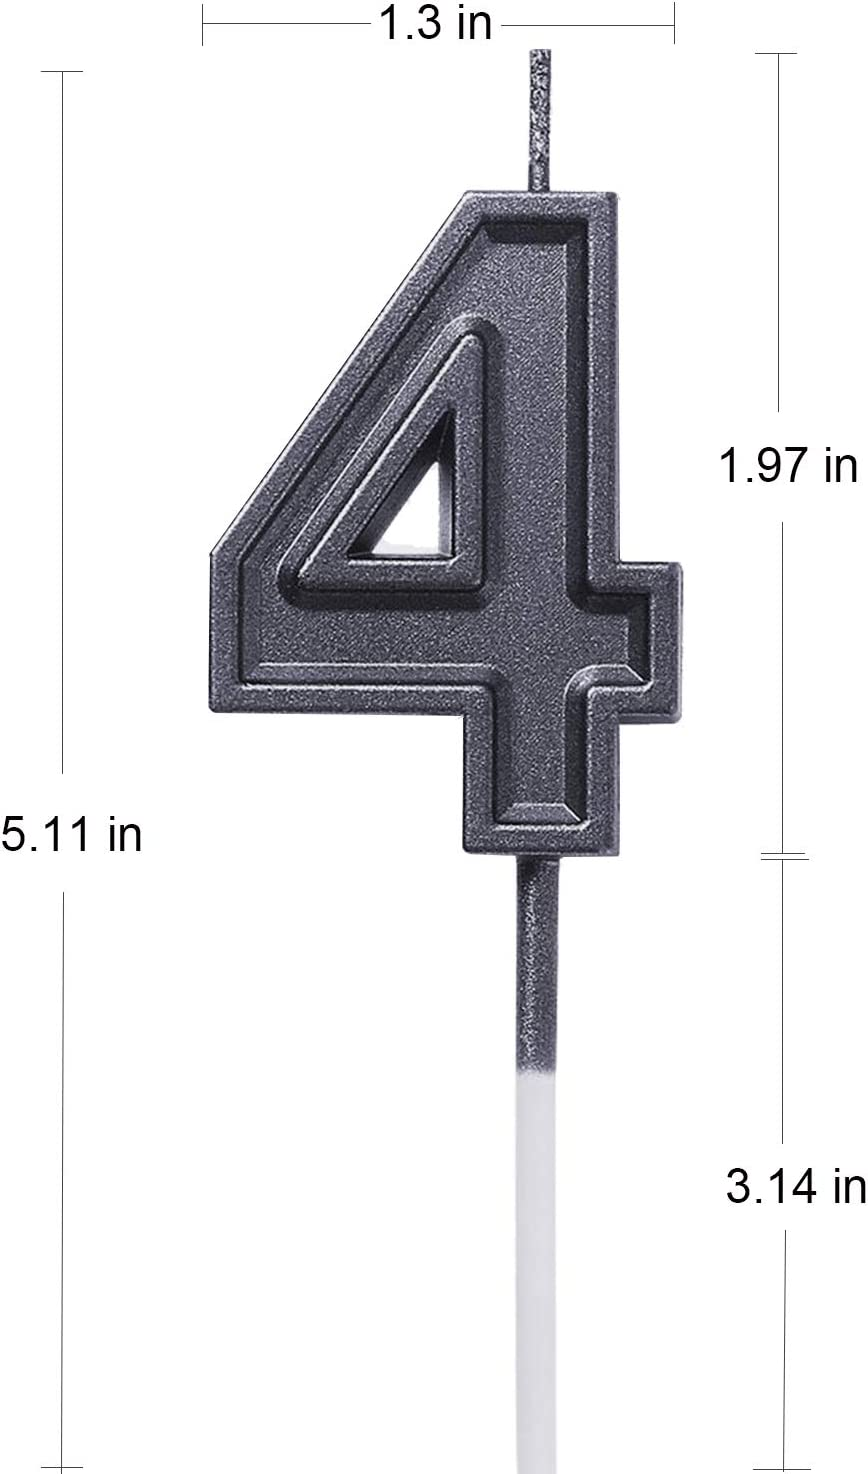 Black 0 Gesentur Happy Birthday Candles Numbers Cake Topper 3D Design Diamond Candles for Any Decorations